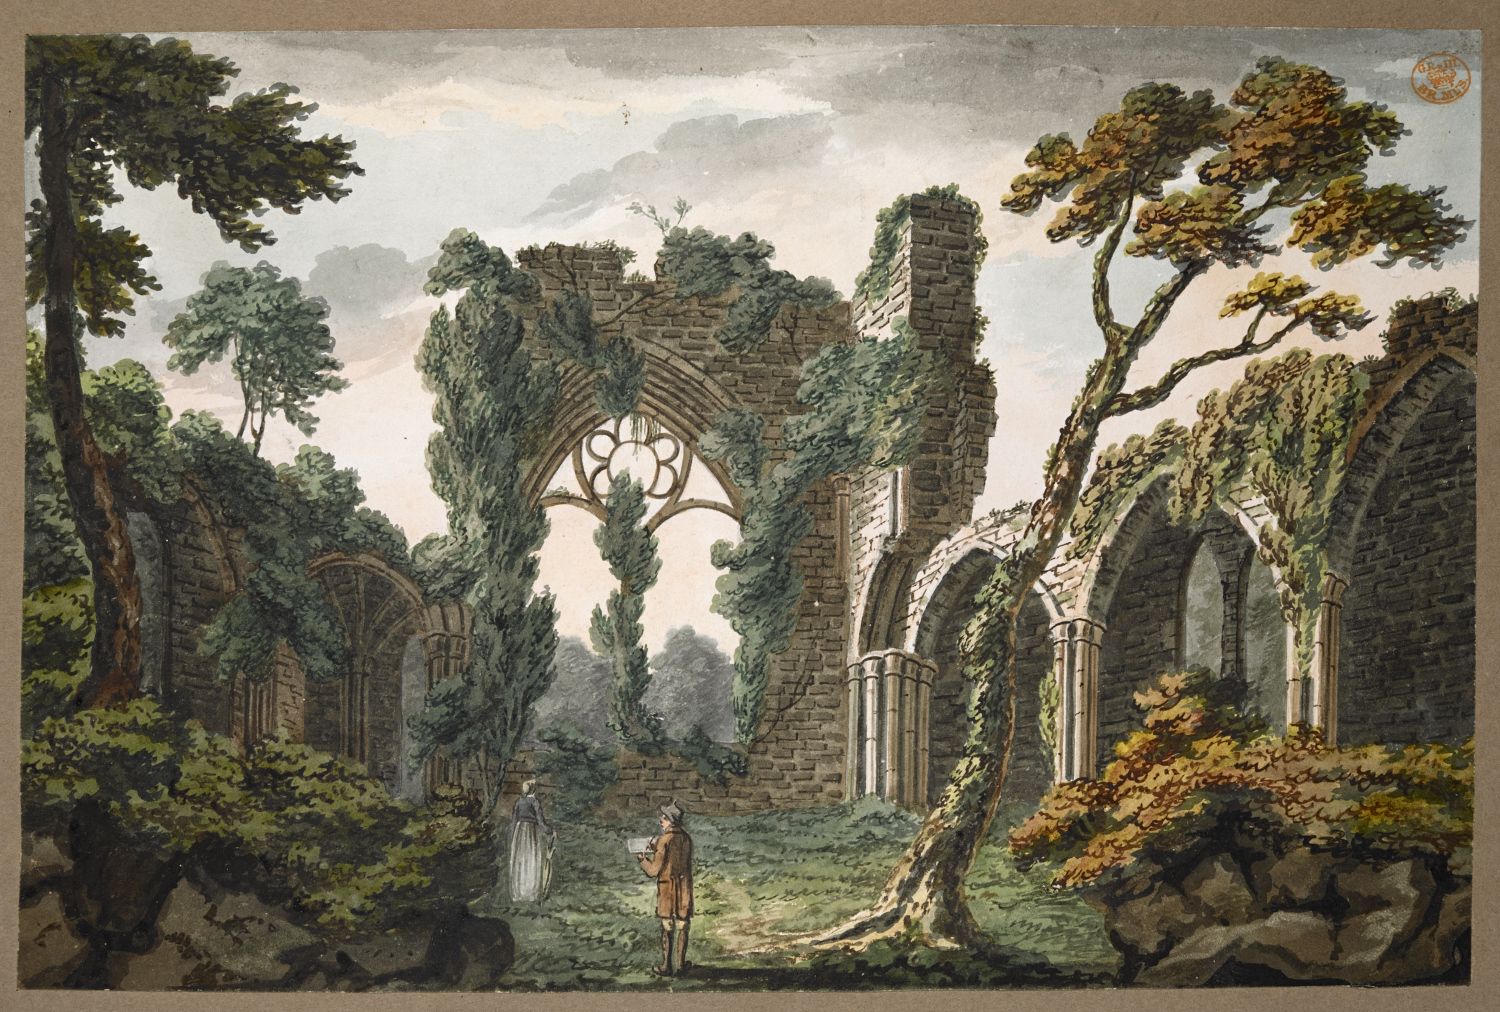 Interior View of the East End of Netley Abbey near Southampton. Summary: A man sketching and a woman standing in the interior of the ruins of Netley Abbey; trees and foliage throughout the scene. Inscribed with title in black ink on verso. Inscribed 'O' in black ink on verso.